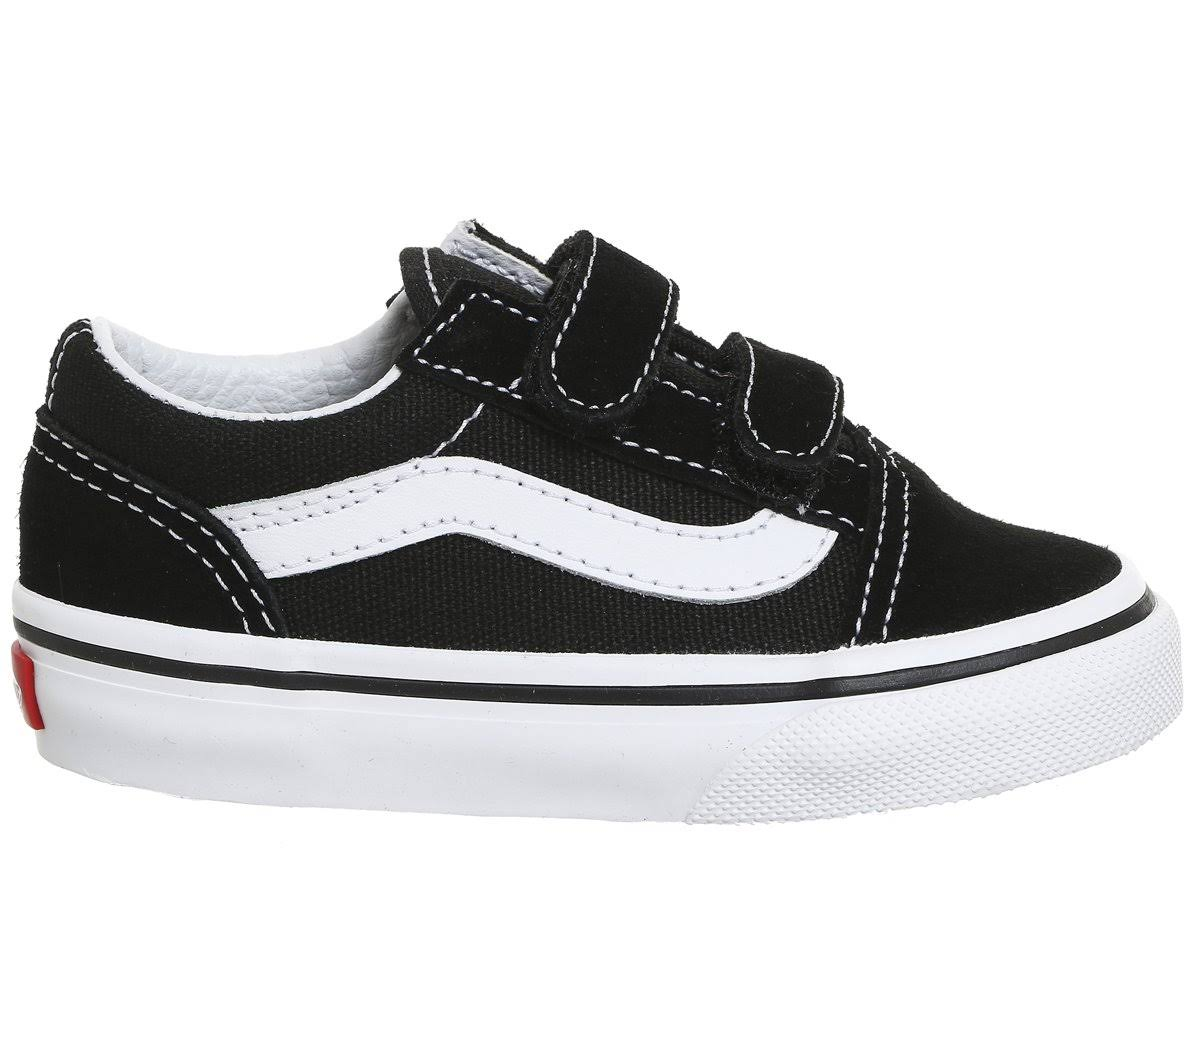 0 3 Old Vans V Toddler Toddlers Skool Black black 5wY5qSxgcX